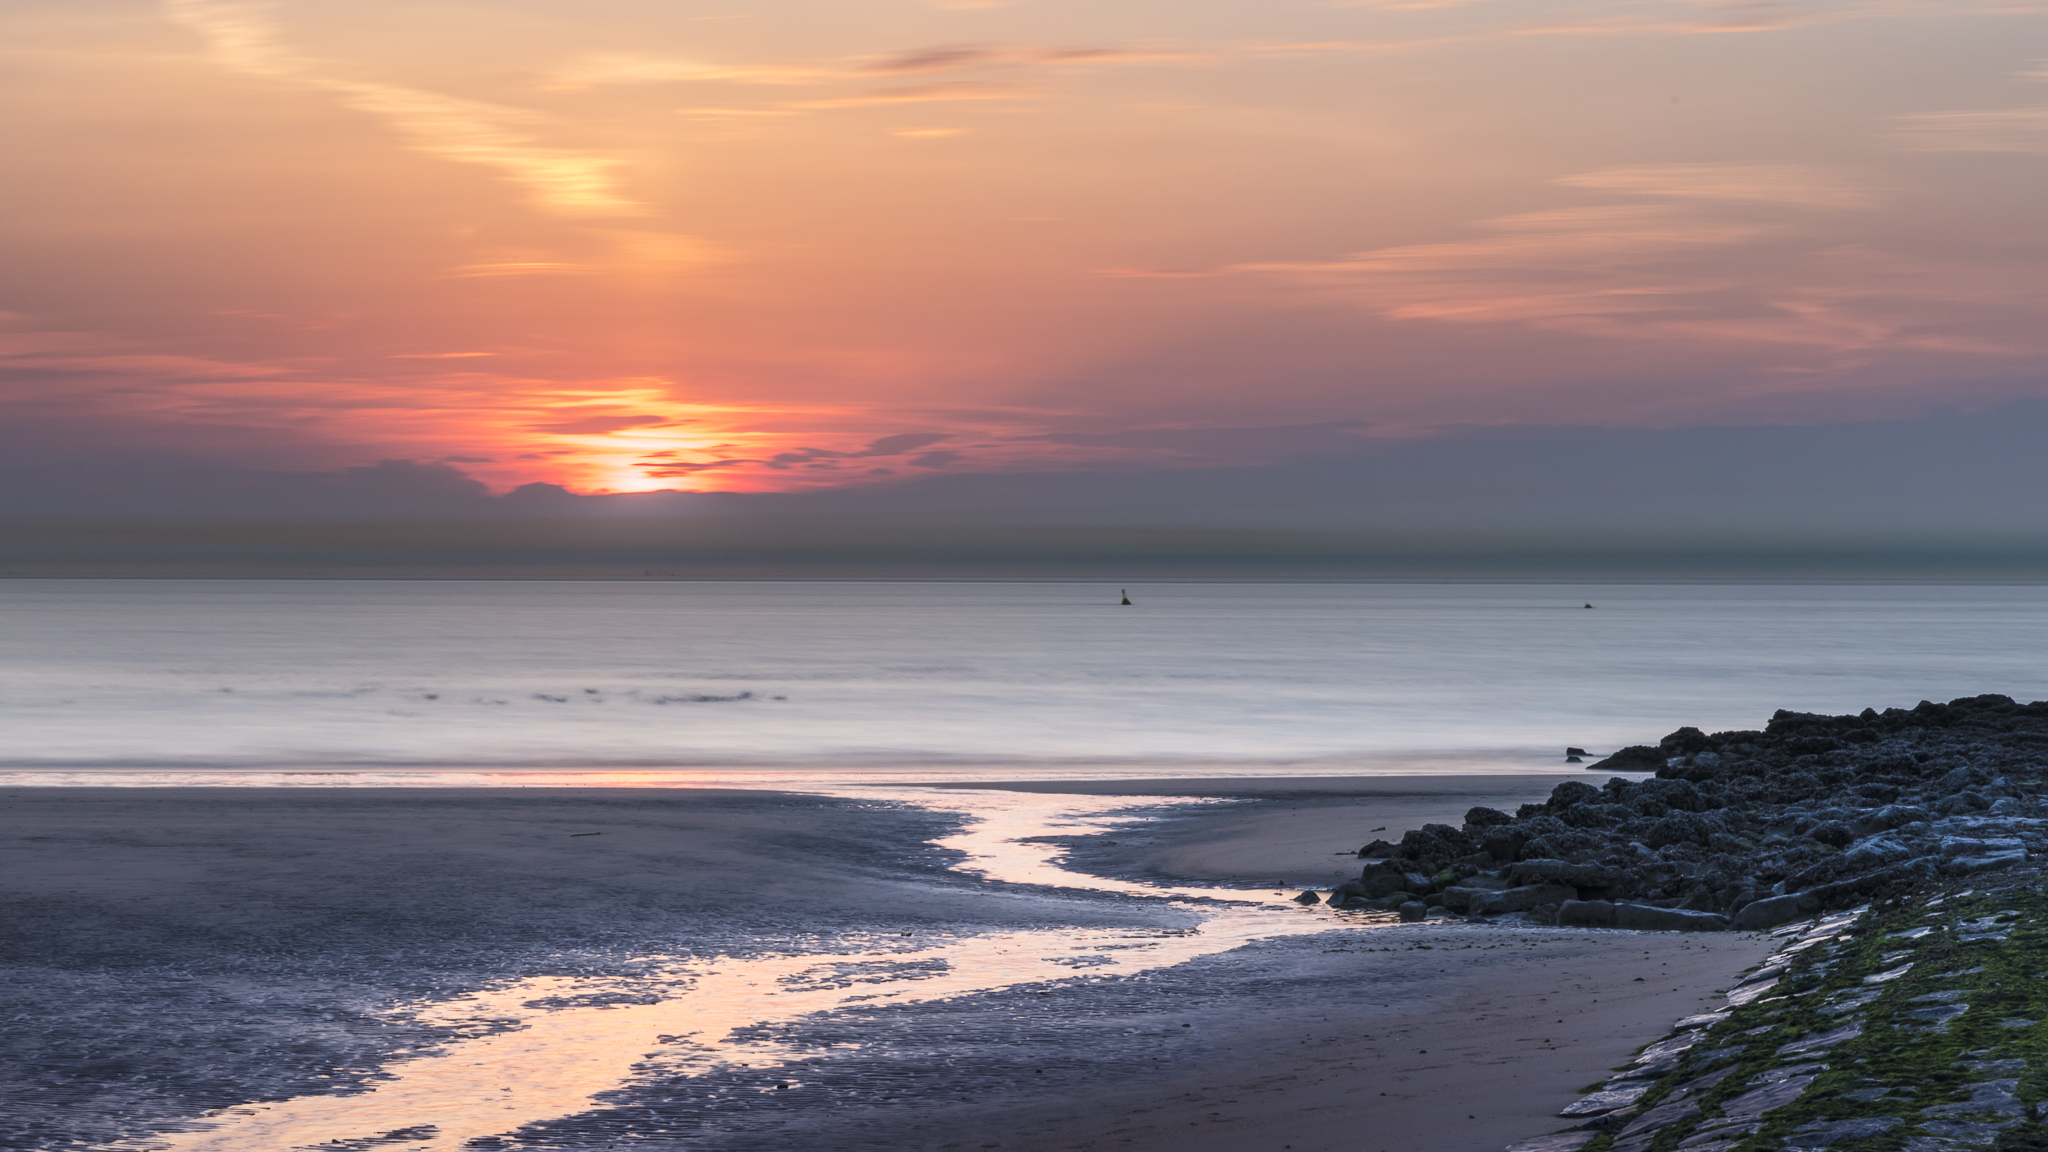 Sunset Belgian coast at low tide, Belgium